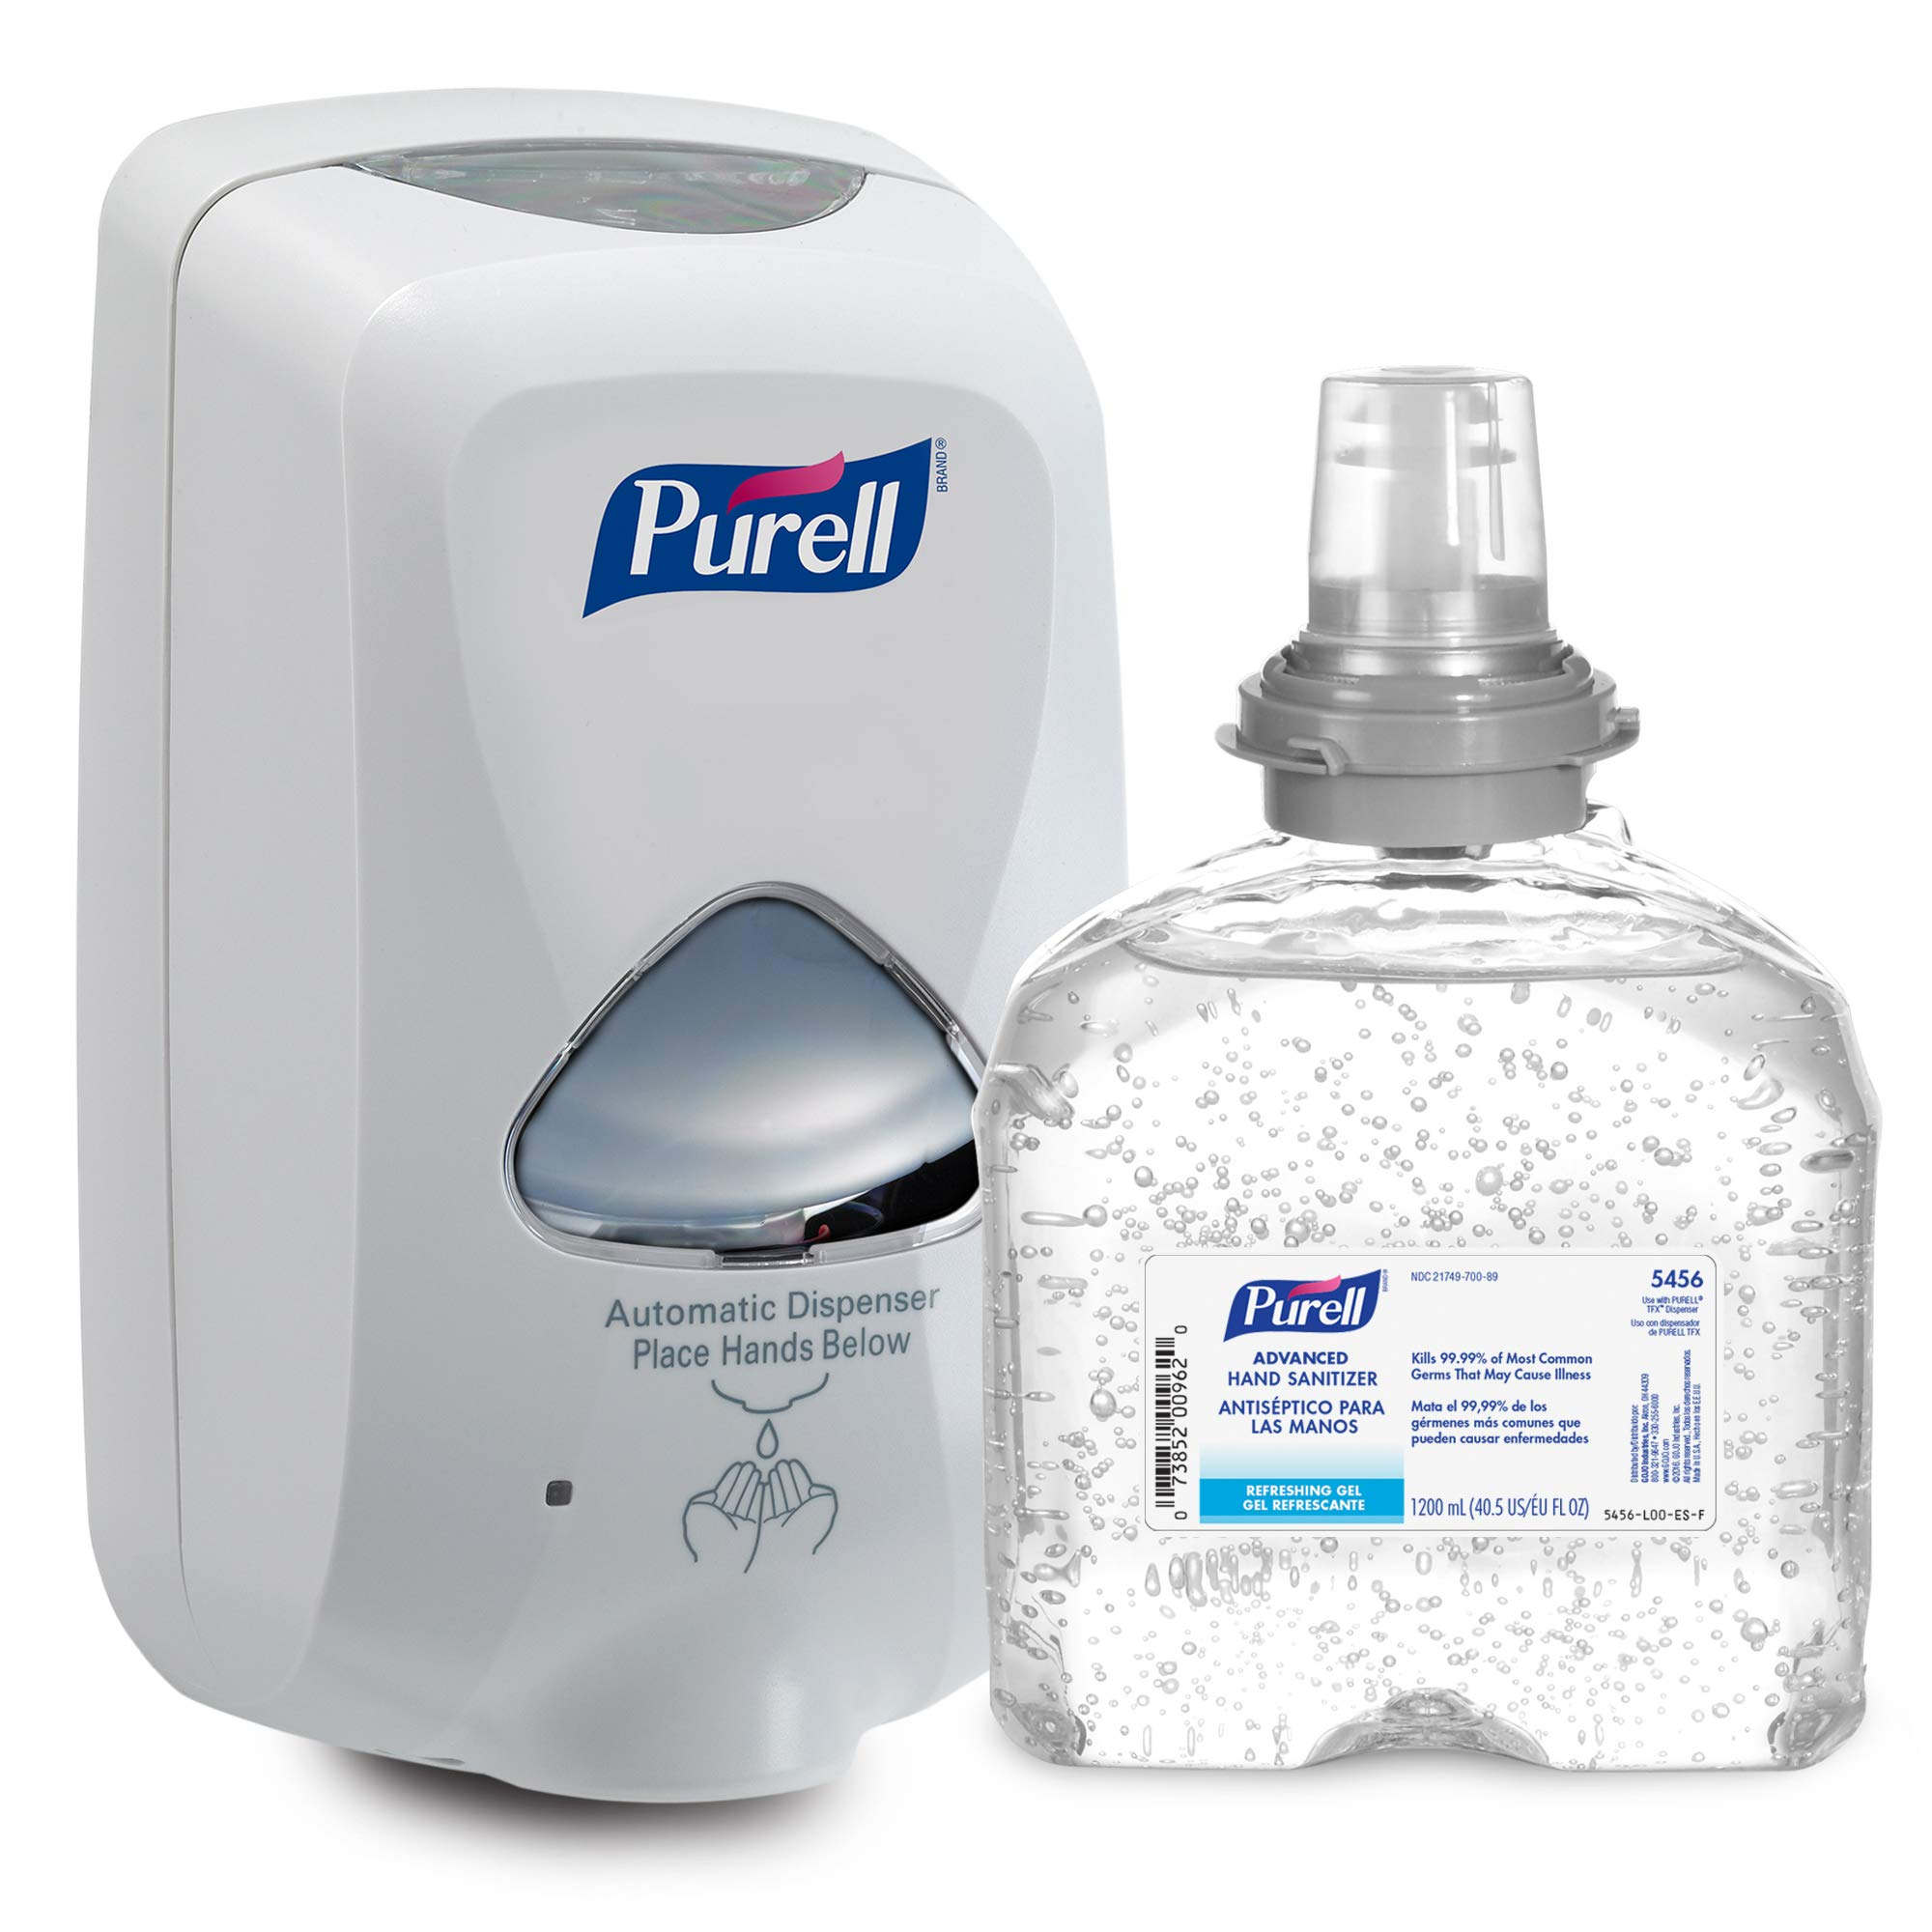 PURELL Advanced Hand Sanitizer Gel TFX Starter Kit, 1-1200 mL Hand Sanitizer Refill + 1- PURELL TFX Dove Grey Touch-Free Dispenser – 5456-D1 by Purell (Image #1)